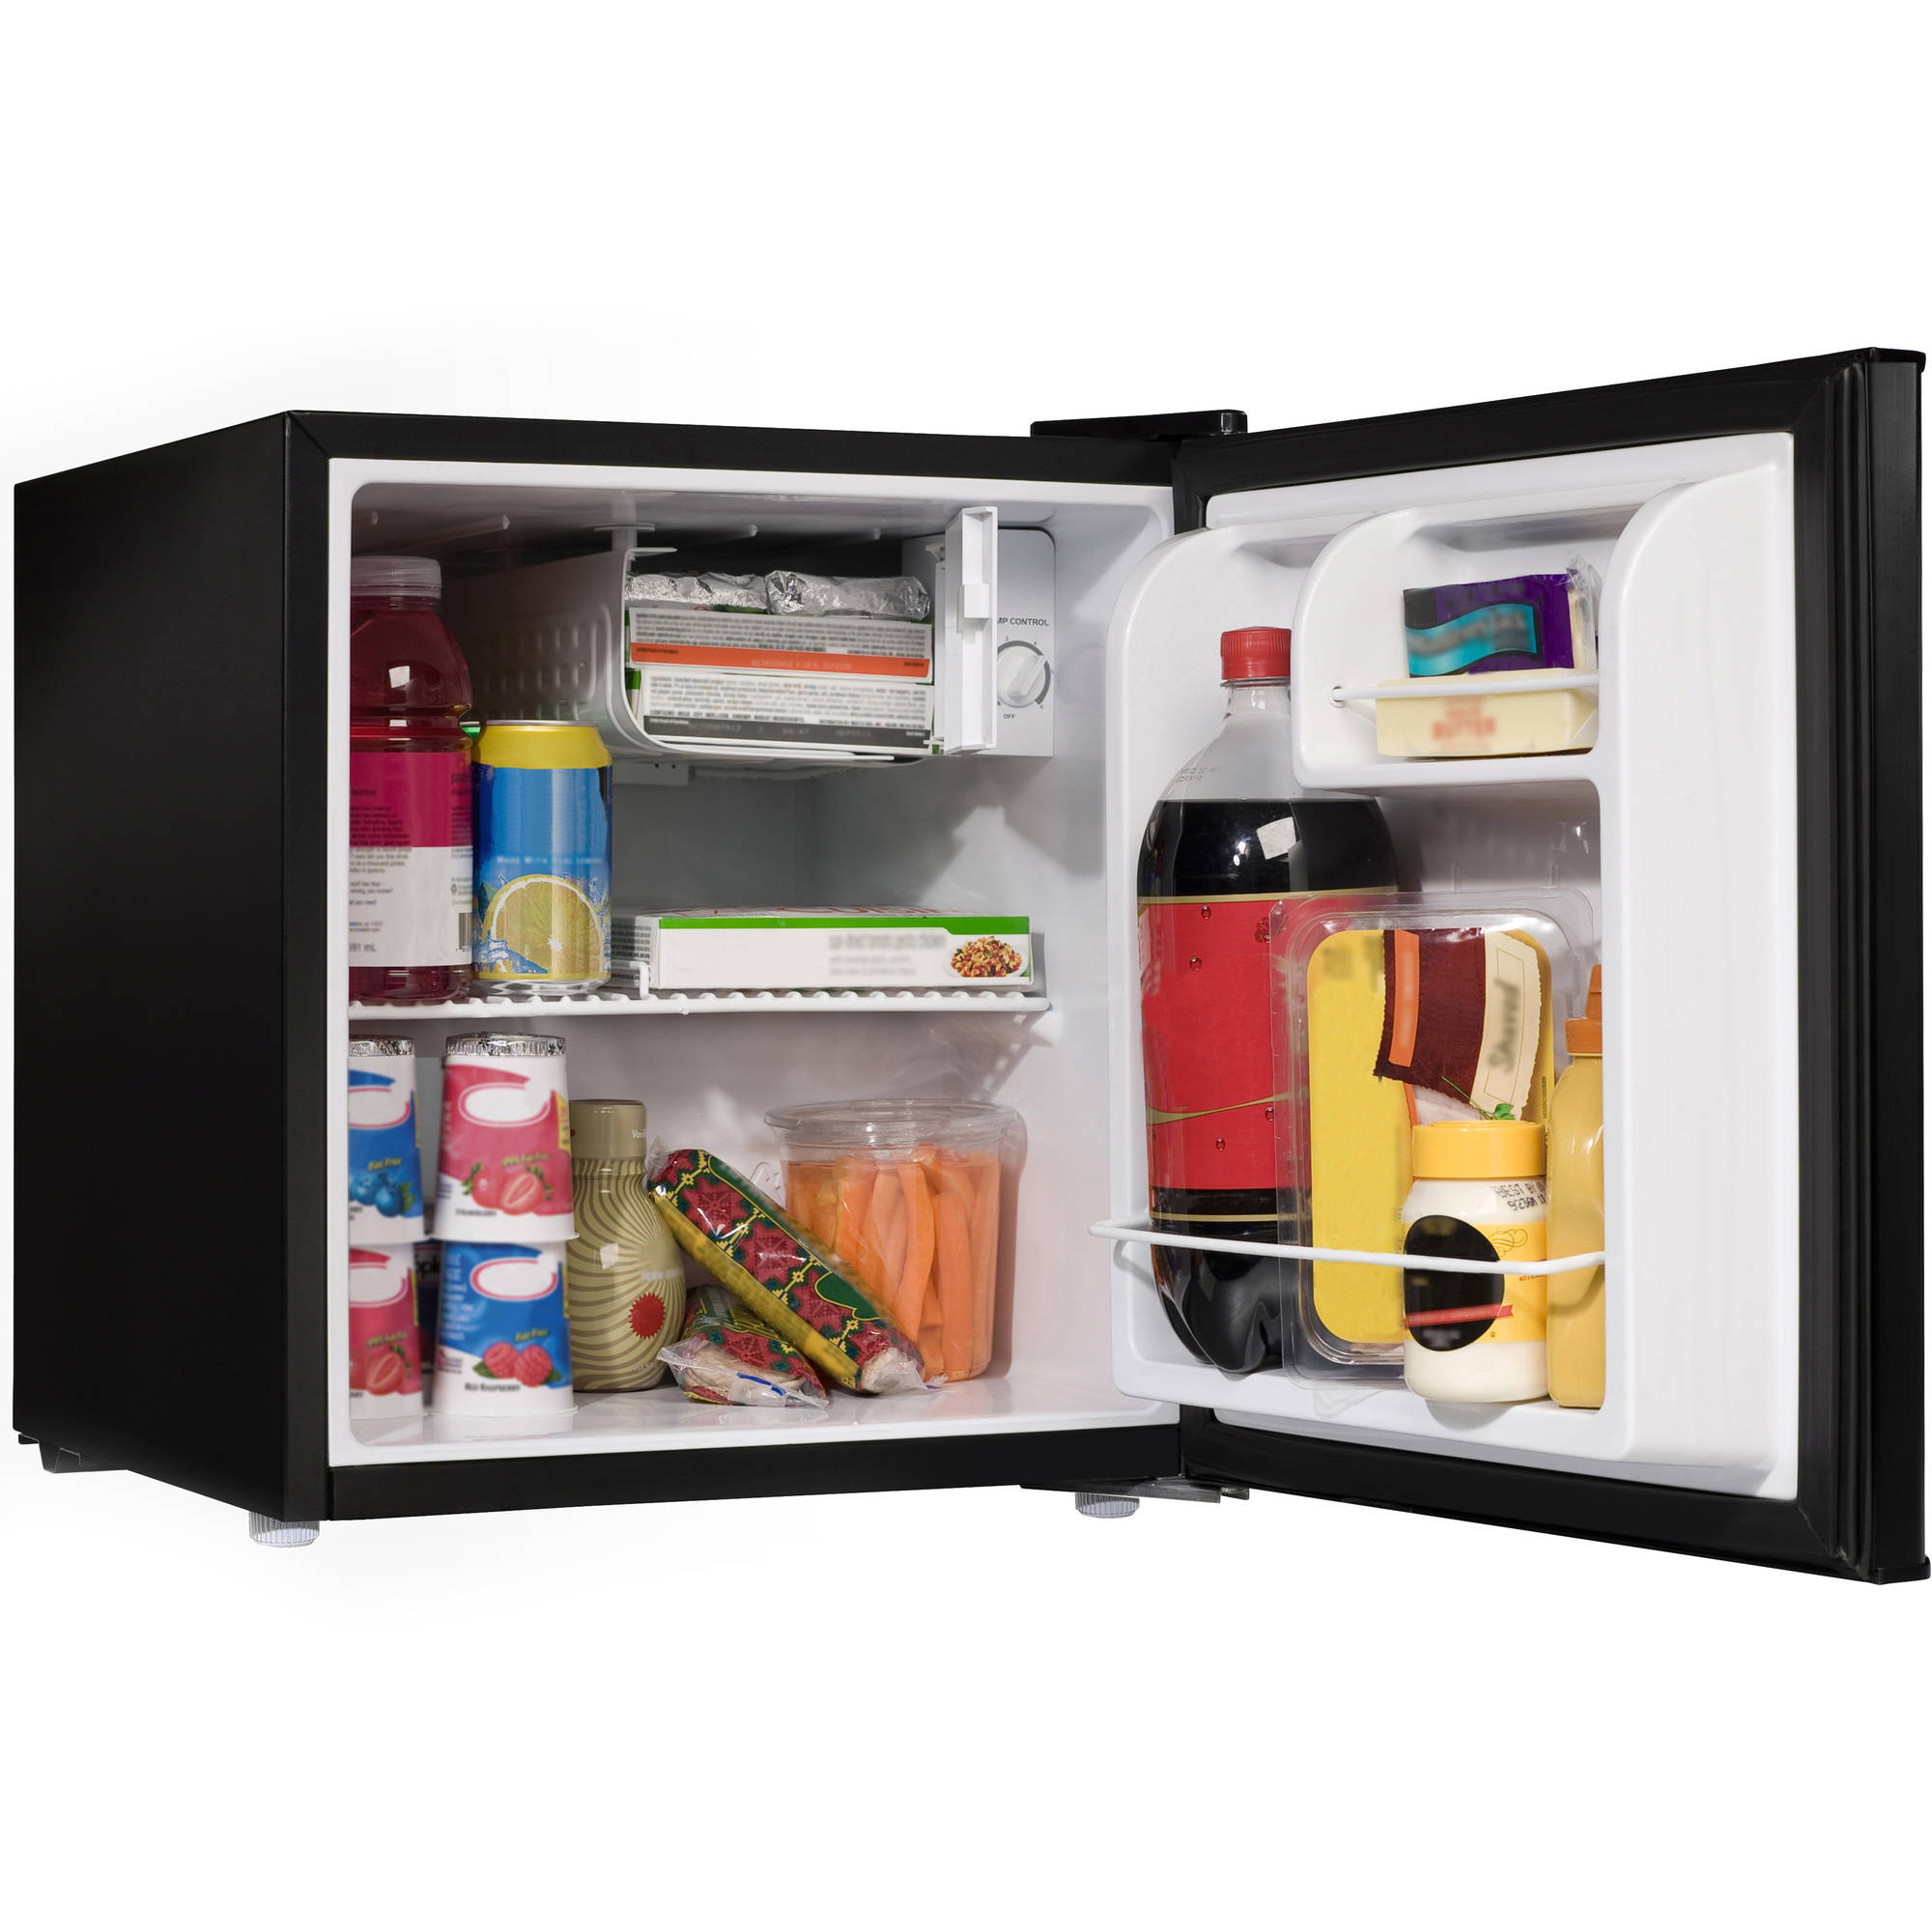 GALANZ 1.7 CU.FT. ONE DOOR REFRIGERATOR BLACK